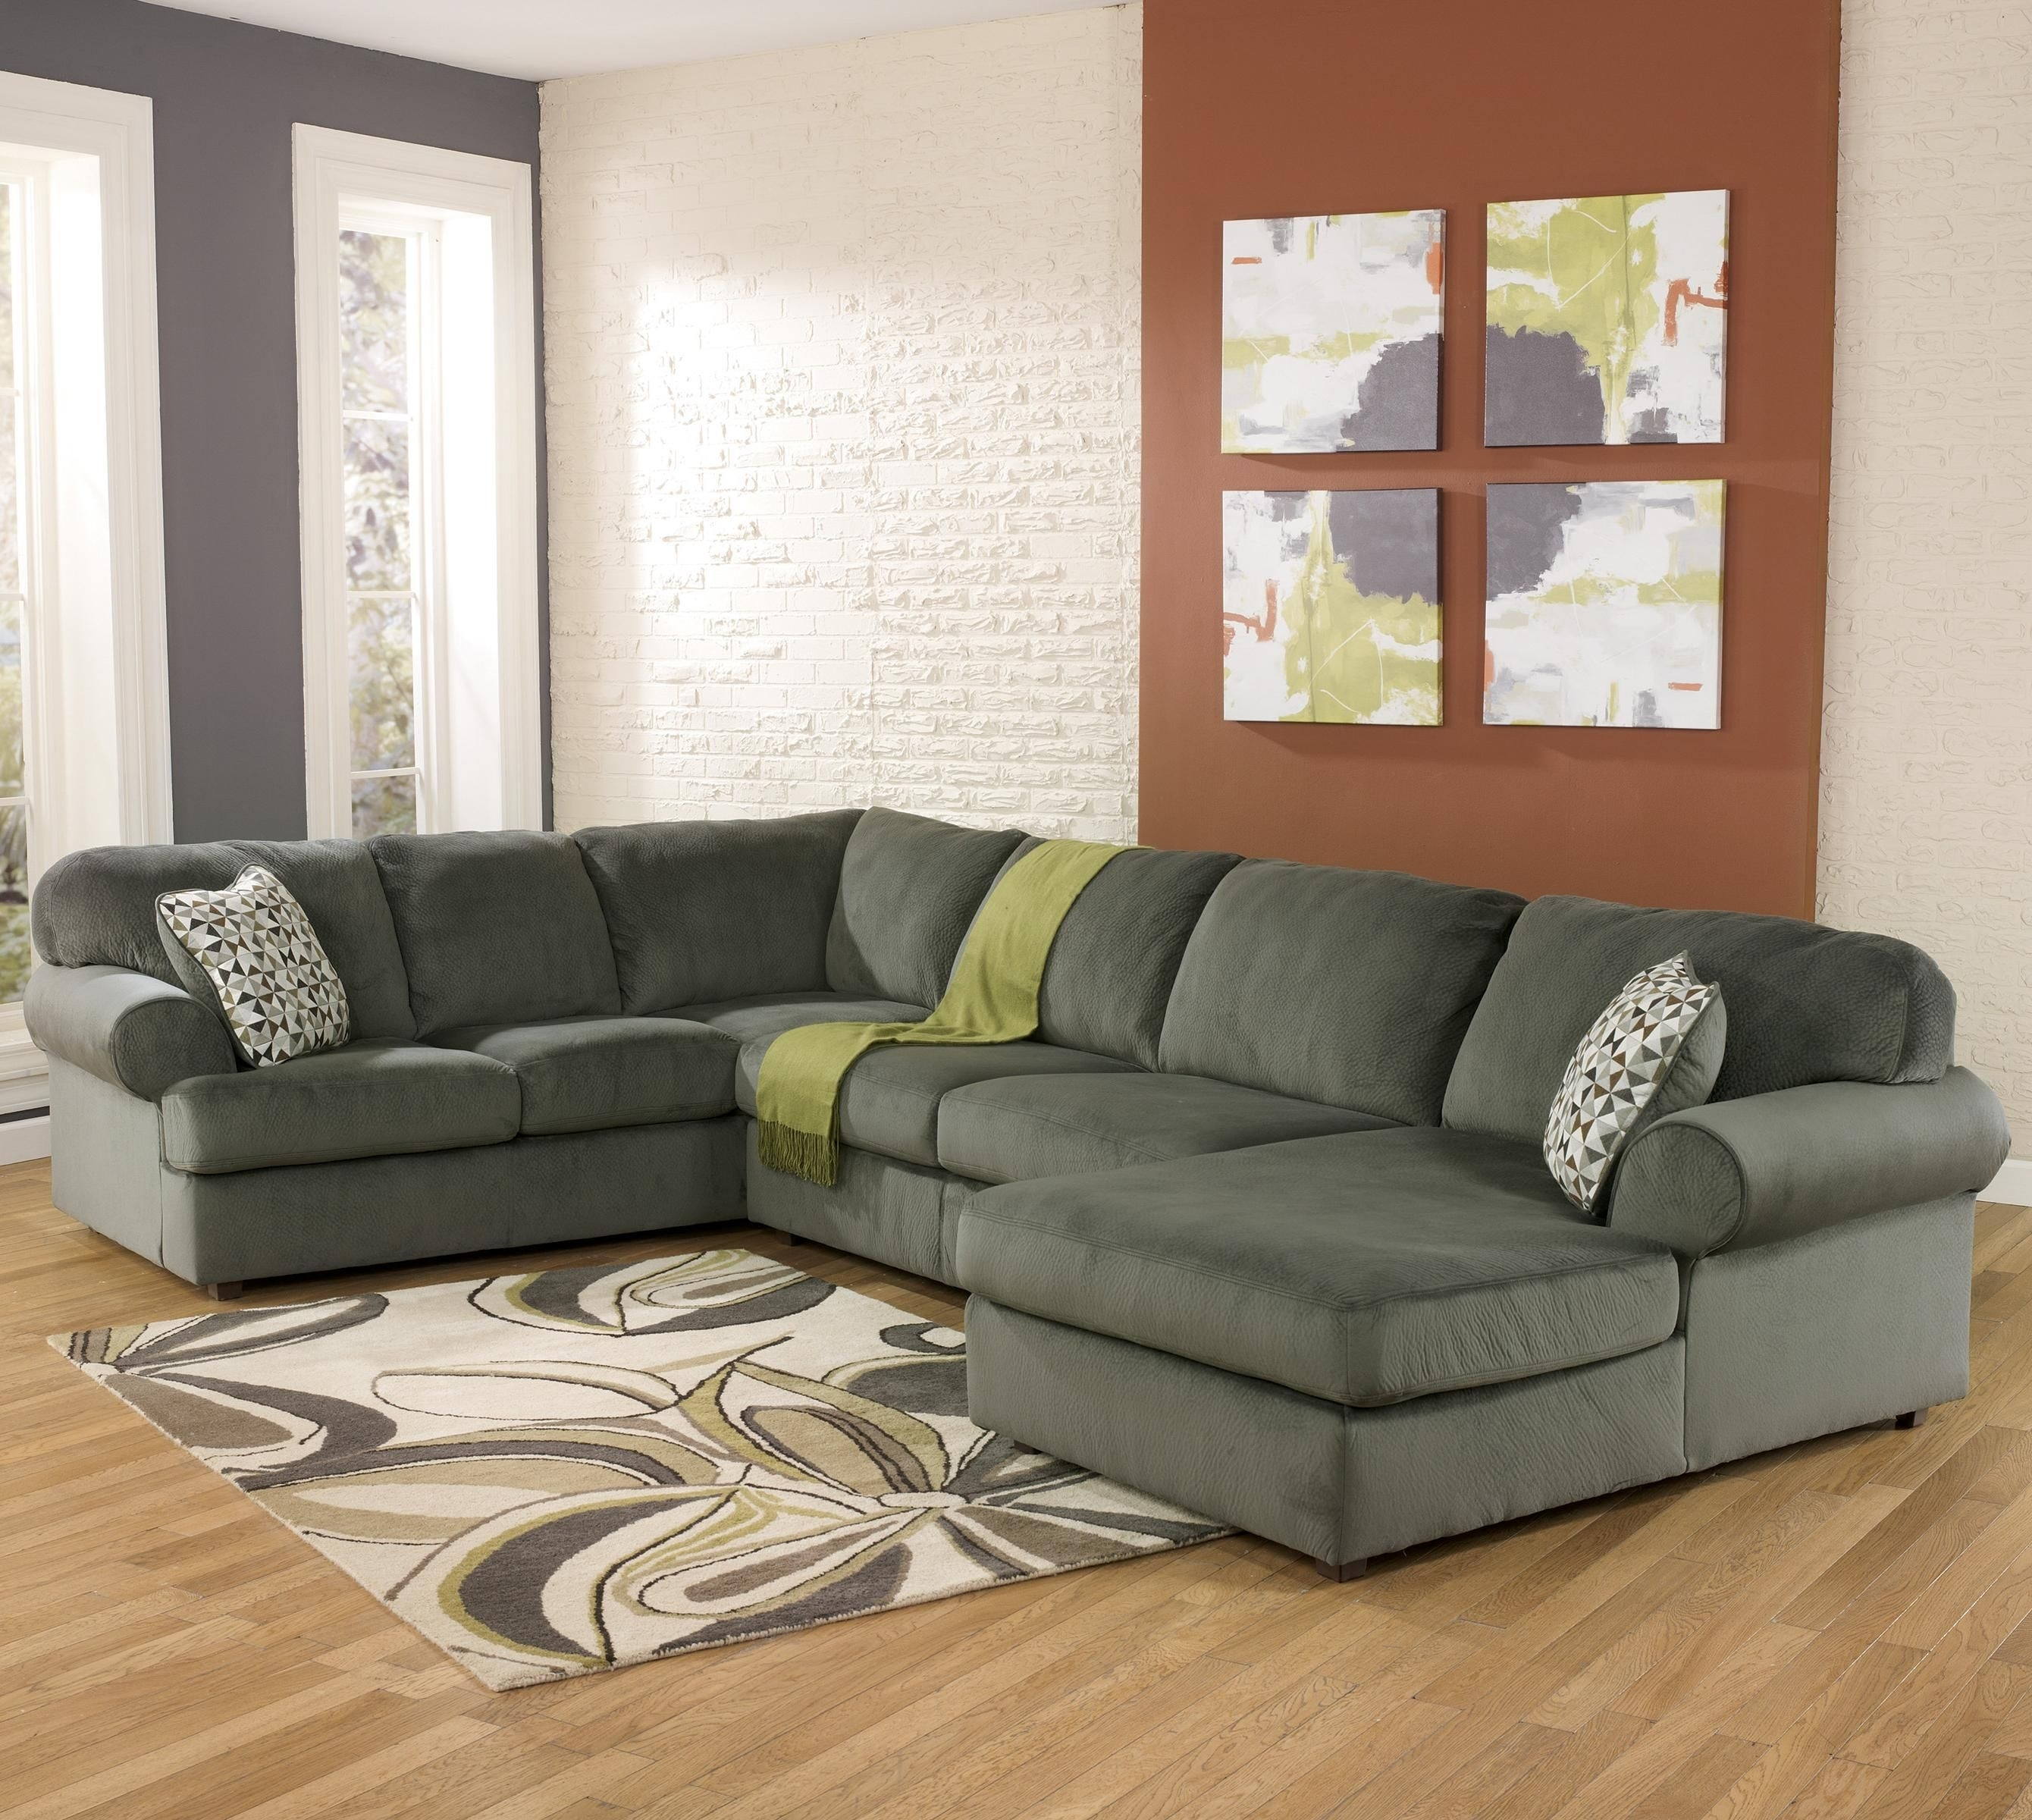 Jessa Place – Pewter Casual Sectional Sofa With Right Chaise Regarding Pensacola Fl Sectional Sofas (Image 9 of 10)